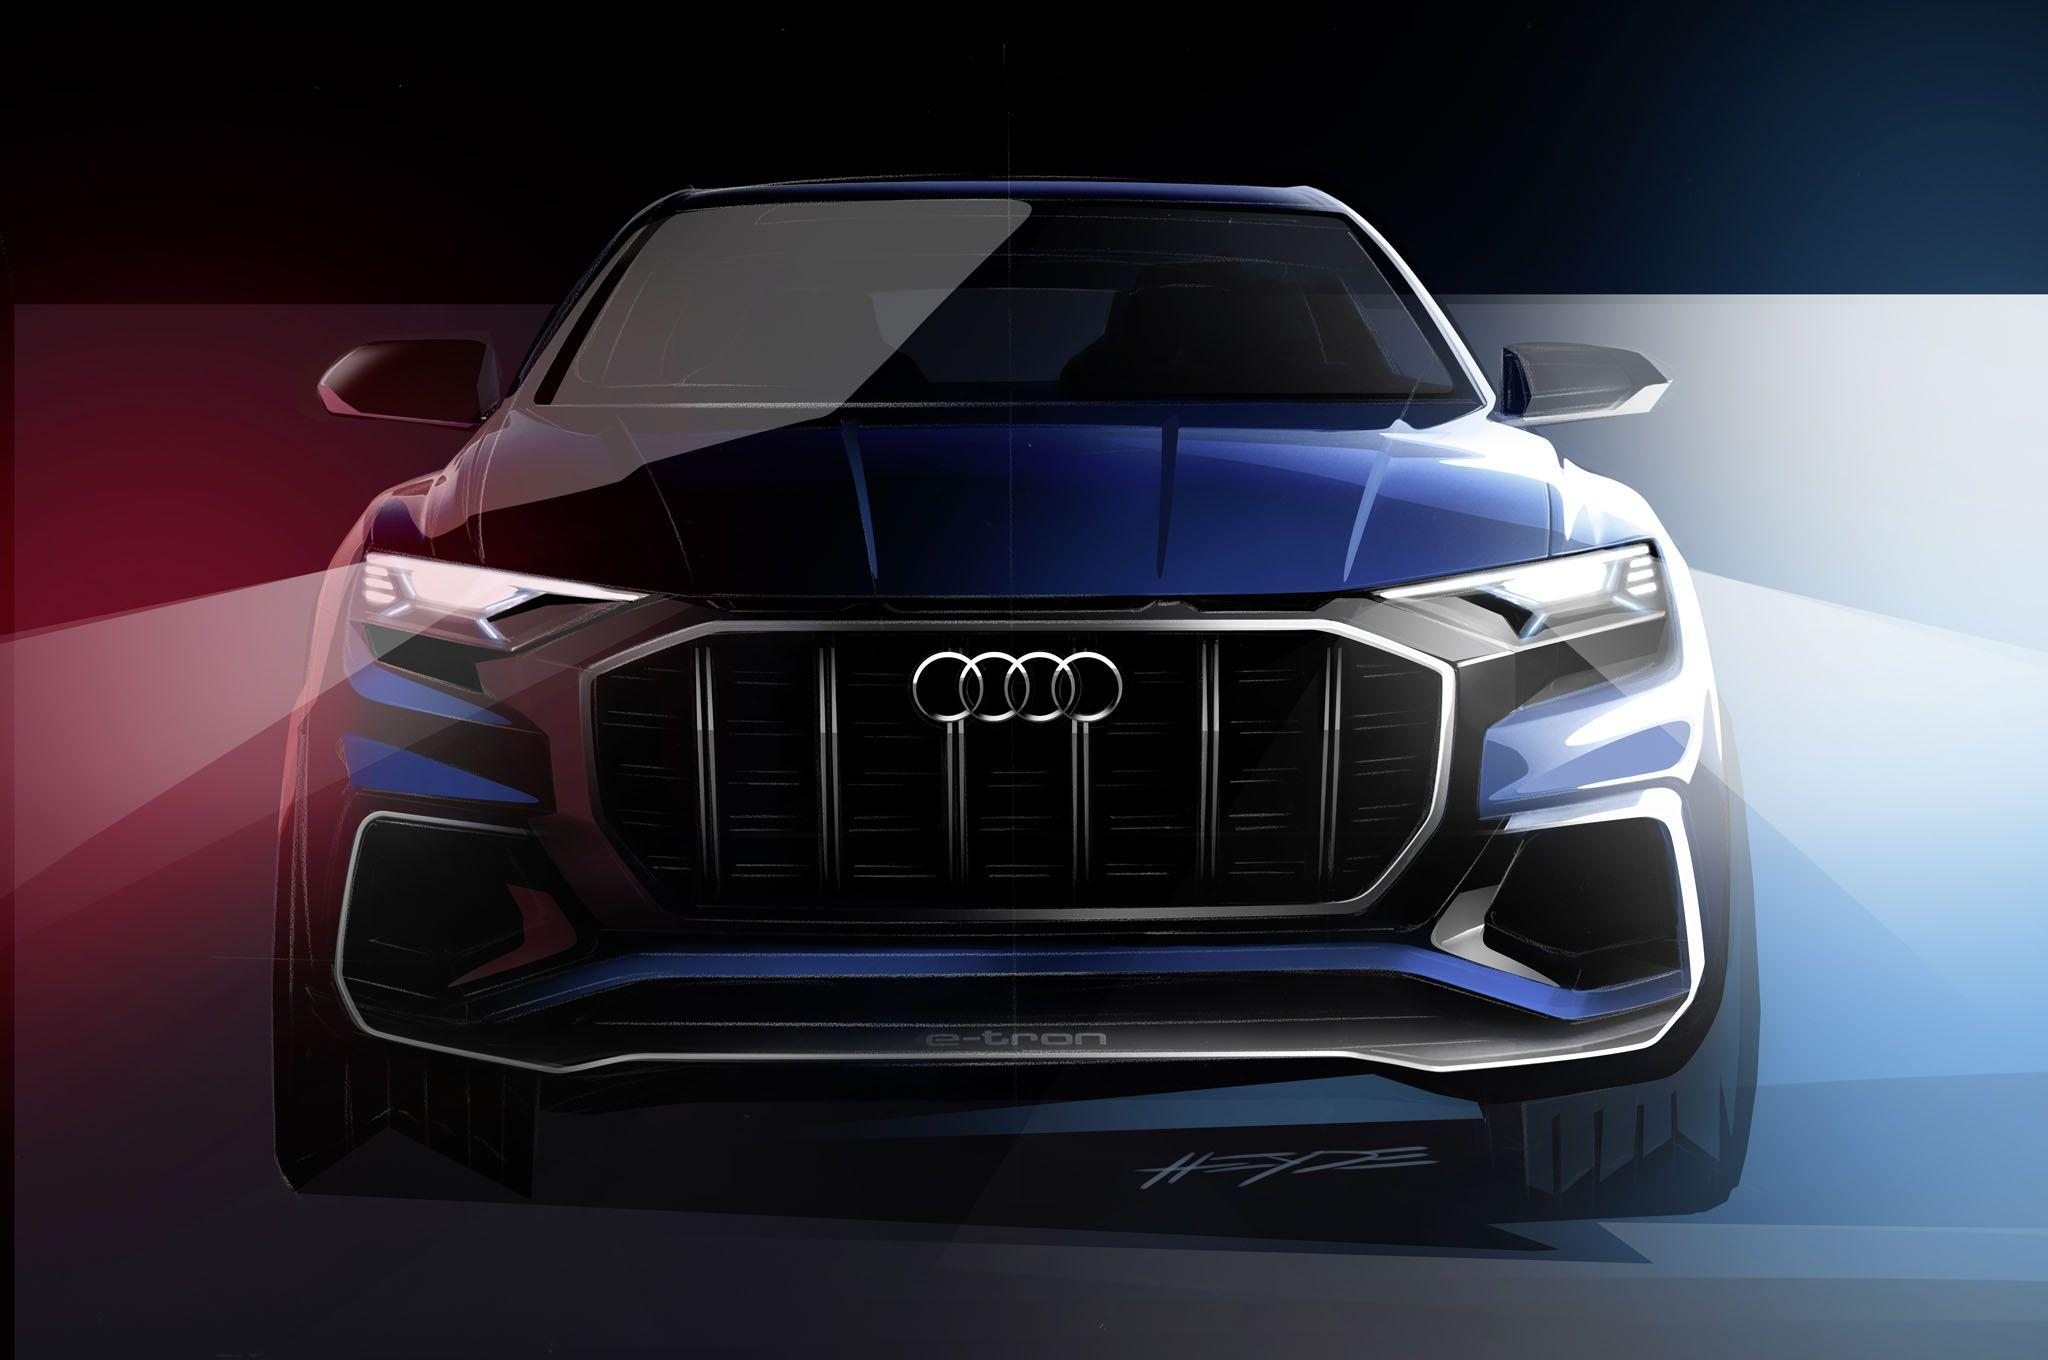 Audi Q8 Concept Wallpapers